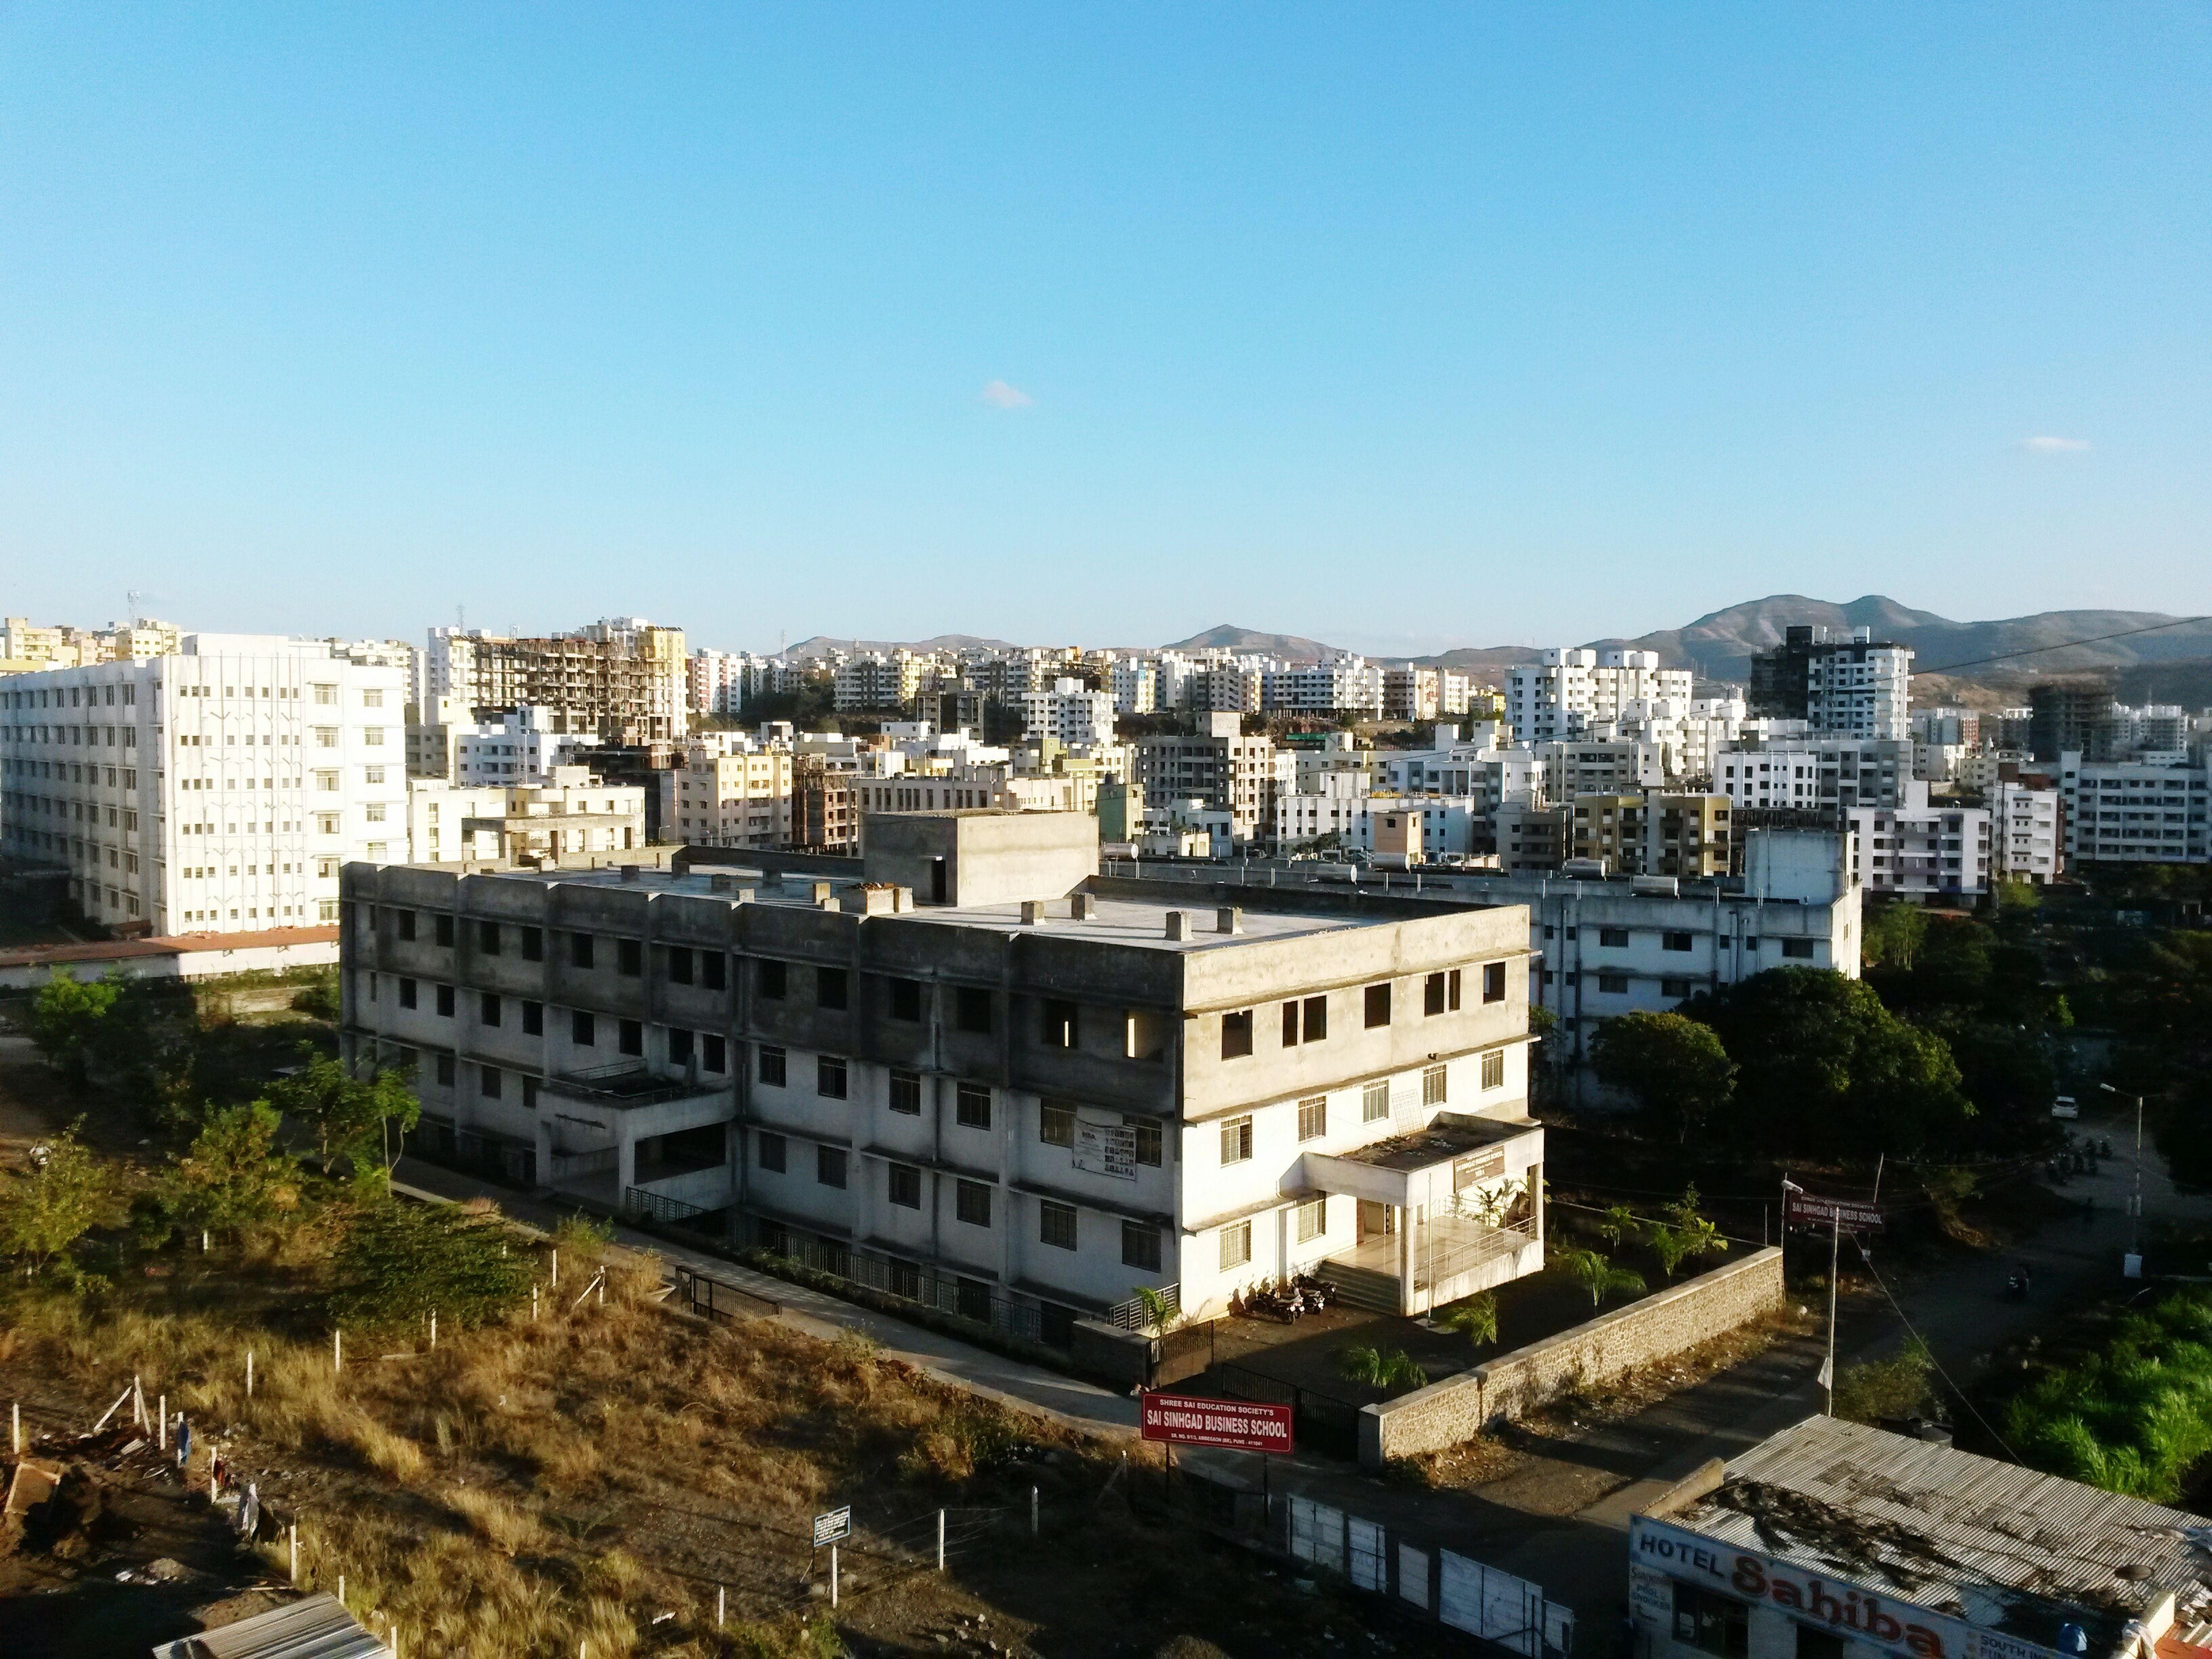 building exterior, architecture, built structure, clear sky, city, copy space, cityscape, residential structure, residential district, residential building, crowded, high angle view, tree, blue, house, city life, building, day, outdoors, town